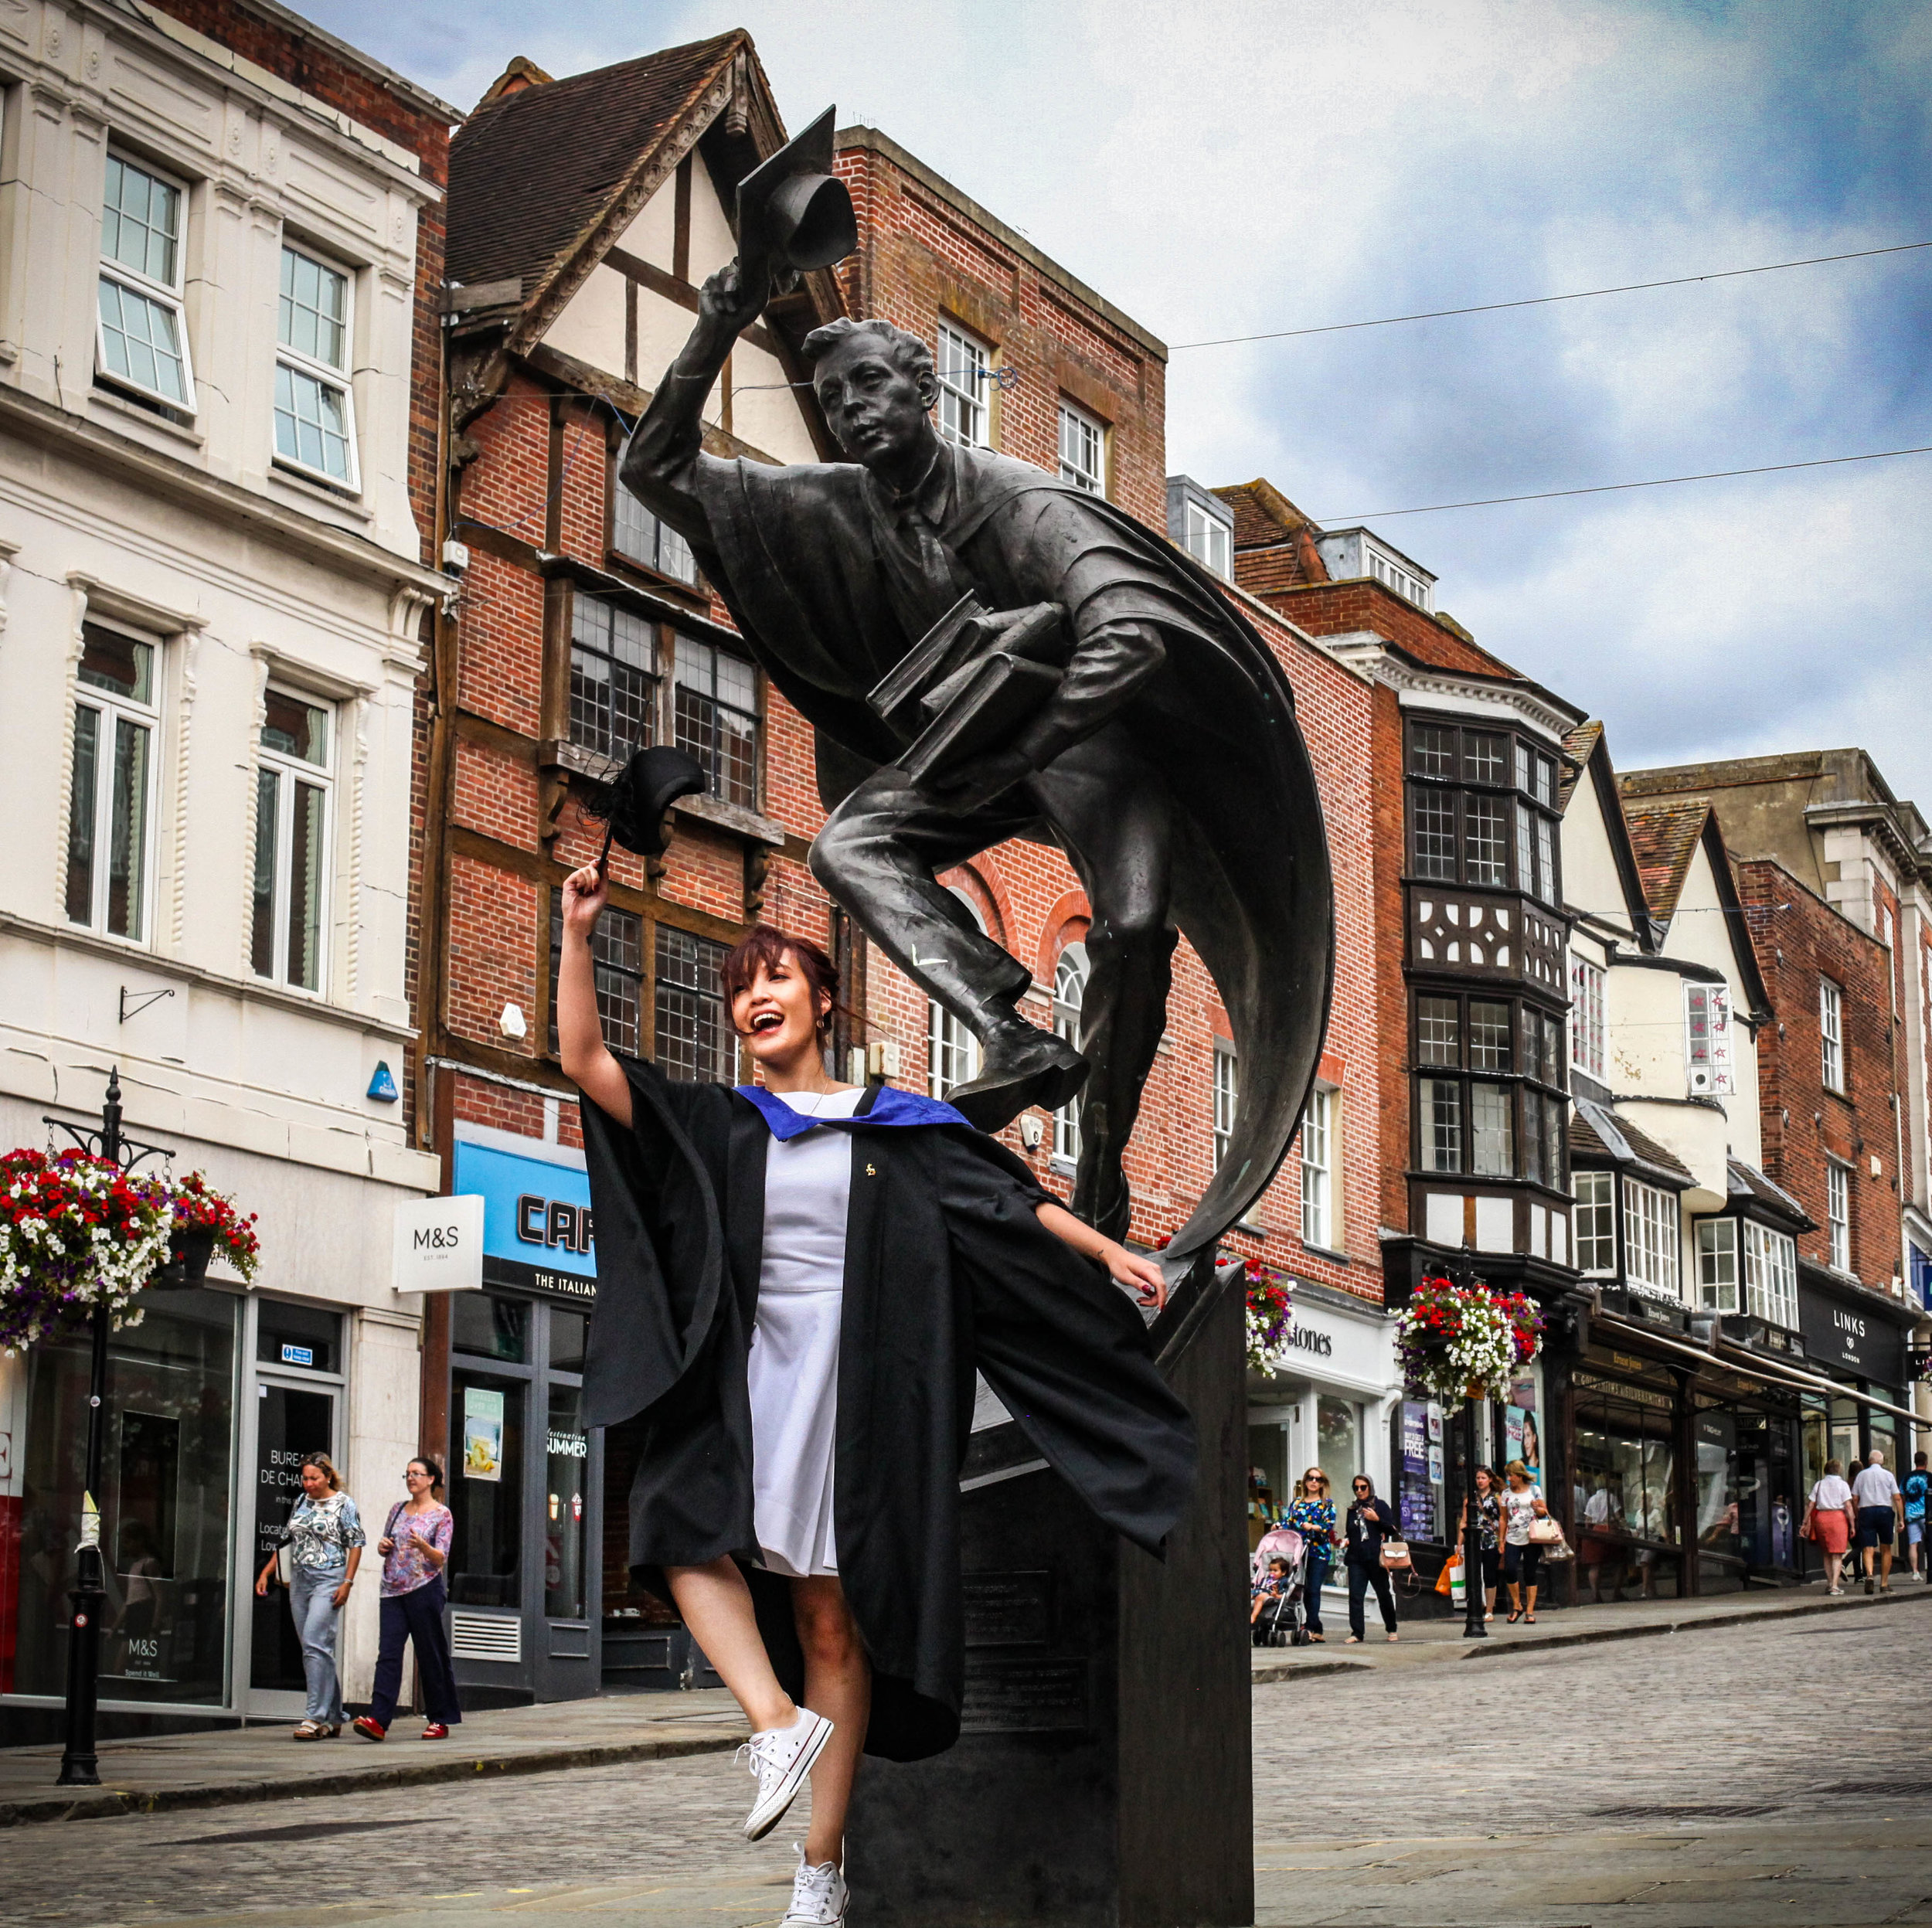 Just an Asian girl in a graduation gown casually trying to mimic a statue in the middle of town centre, that's all XD